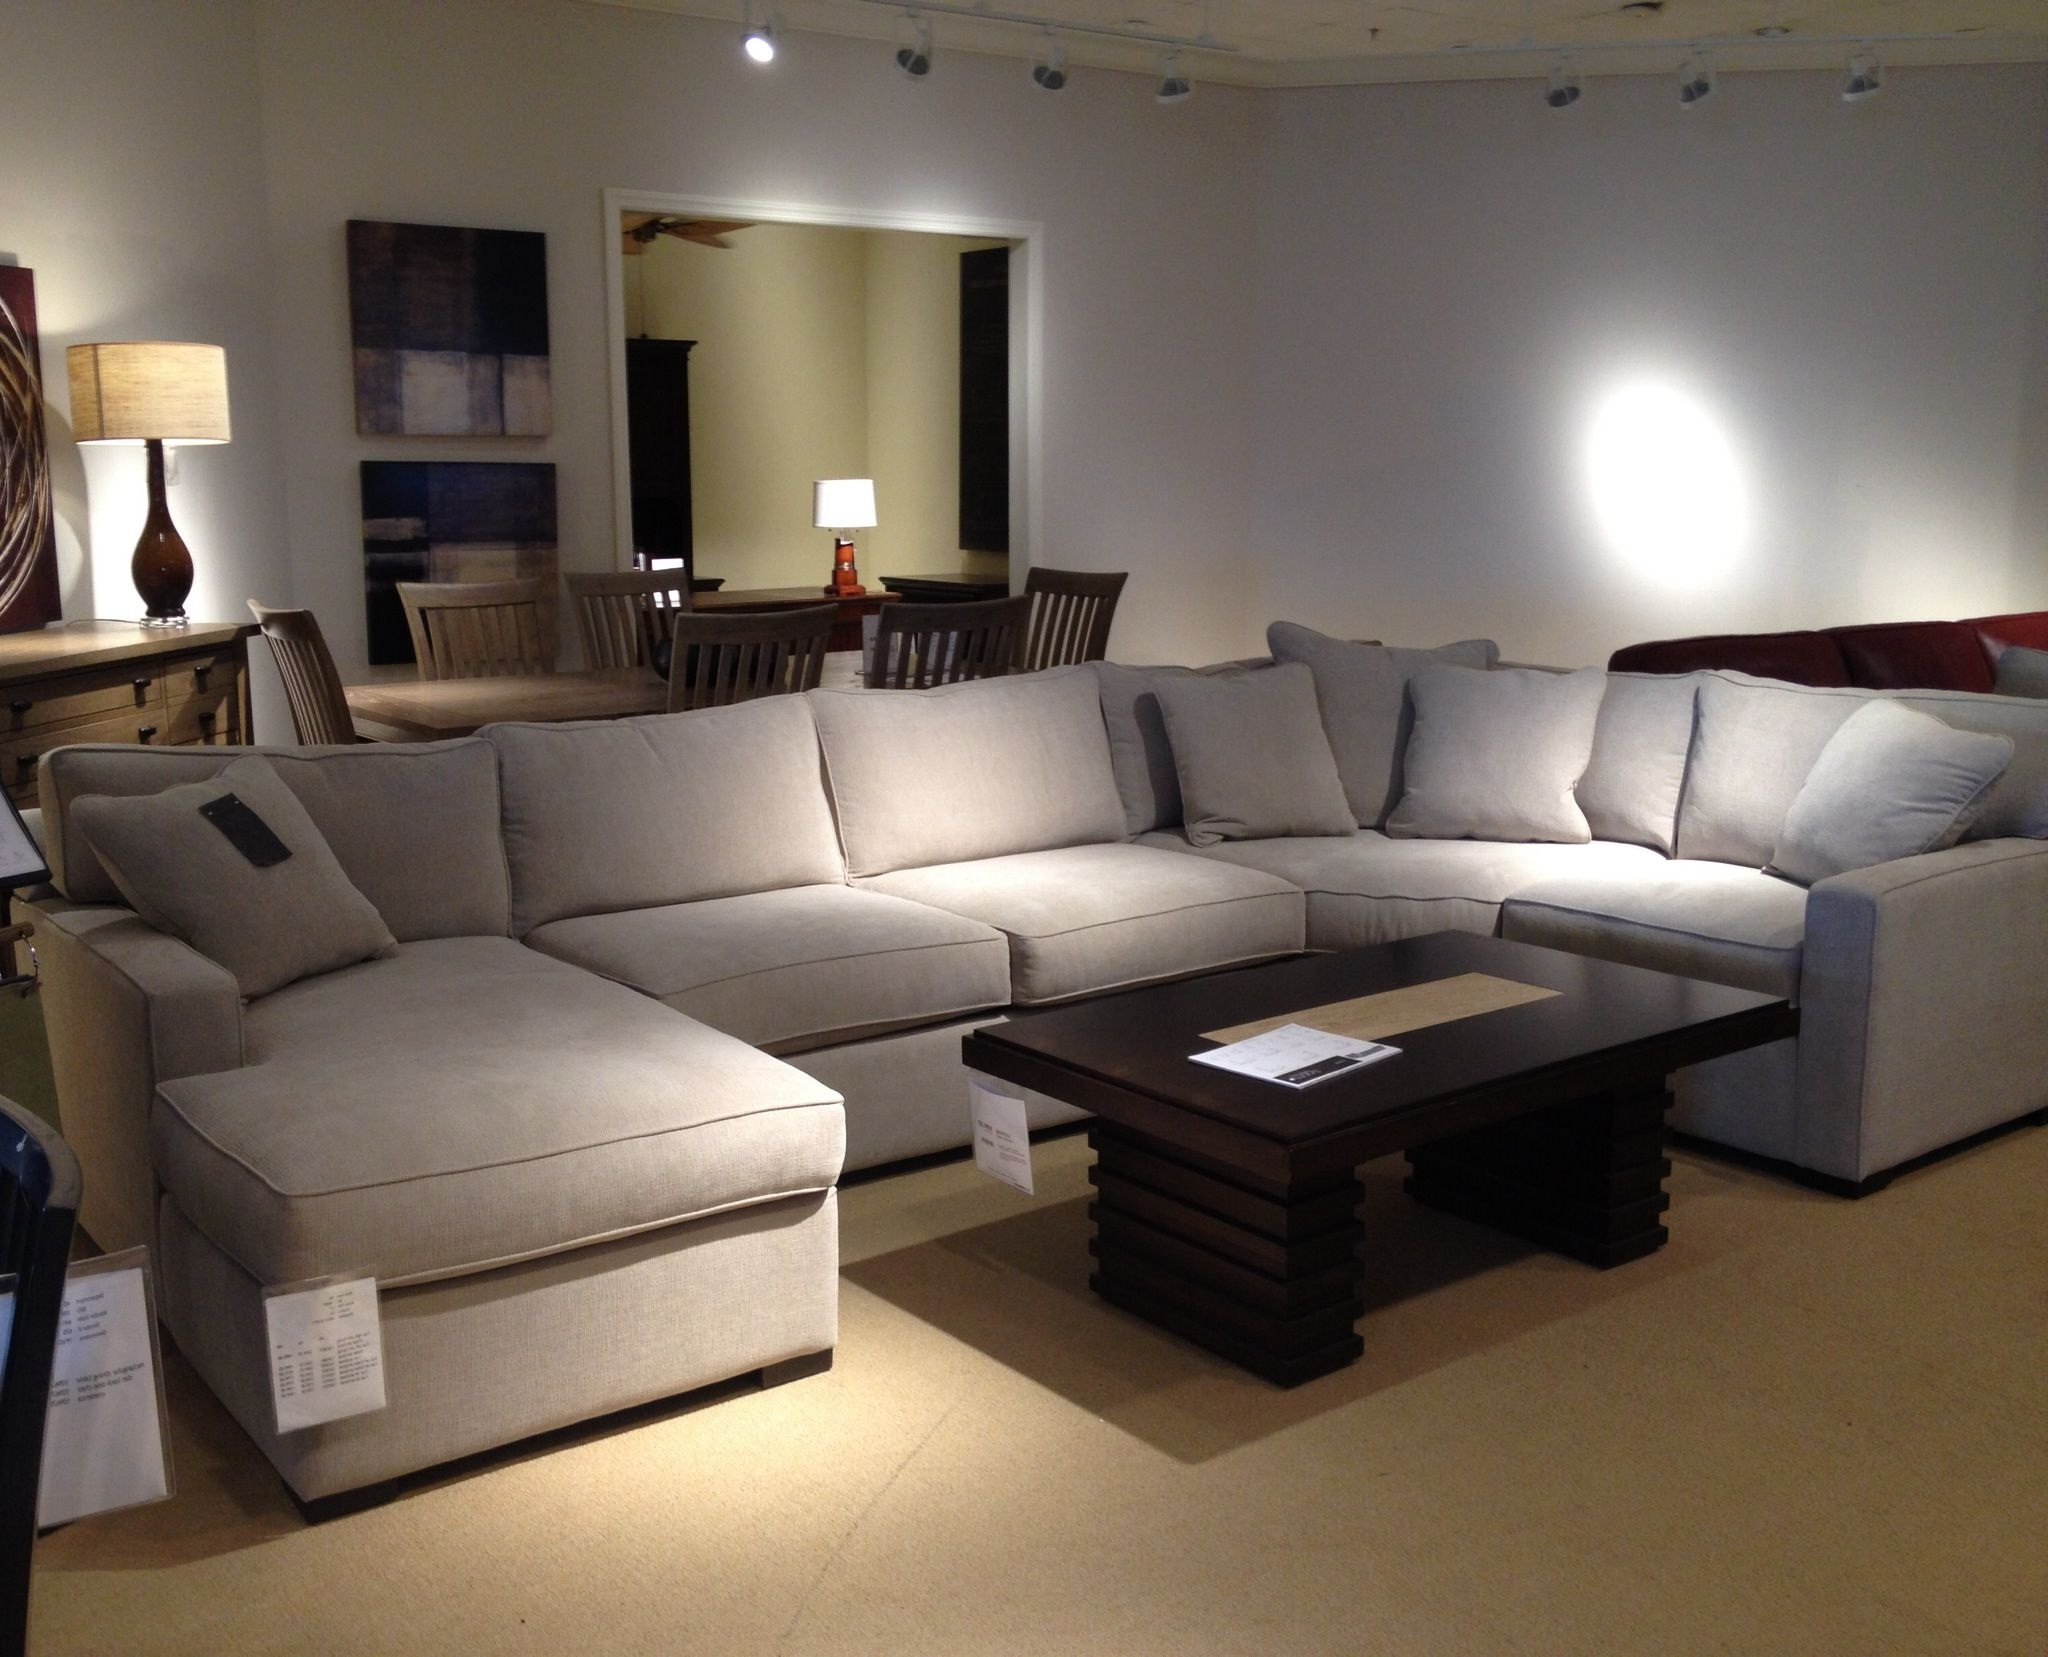 2019 Macys Sectional Sofas Within Radley 4 Piece Sectional Sofa From Macys (View 9 of 20)